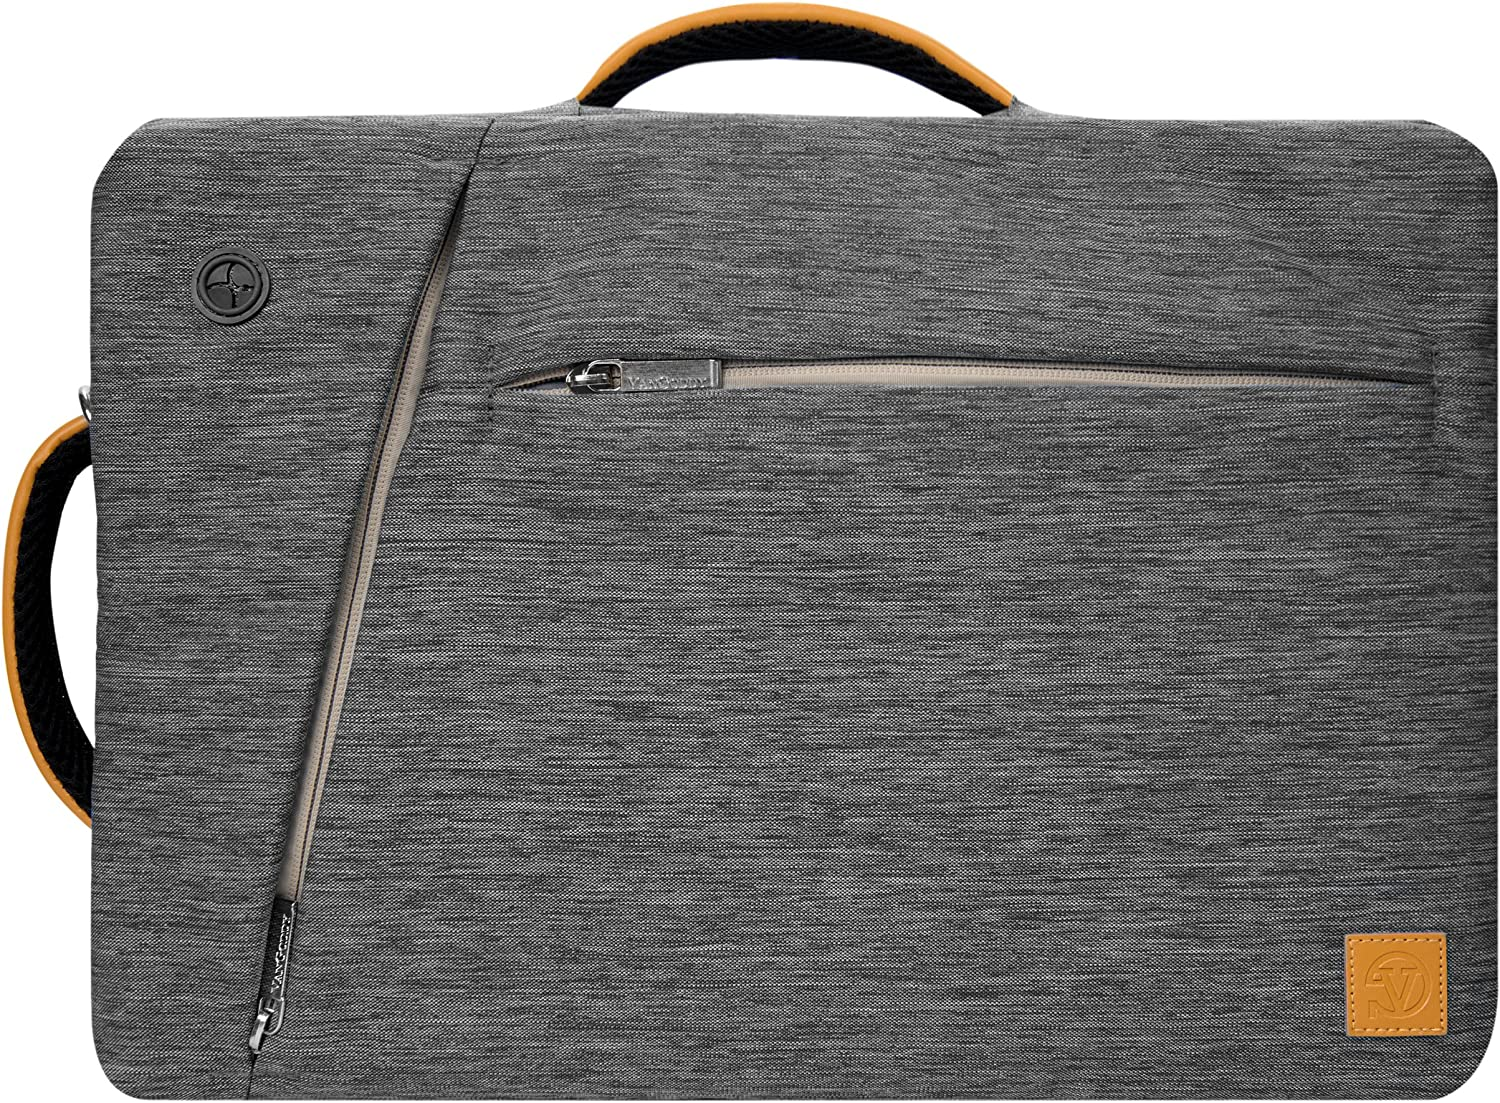 Laptop Bag for Acer Aspire, Swift, Switch, 15in Laptops